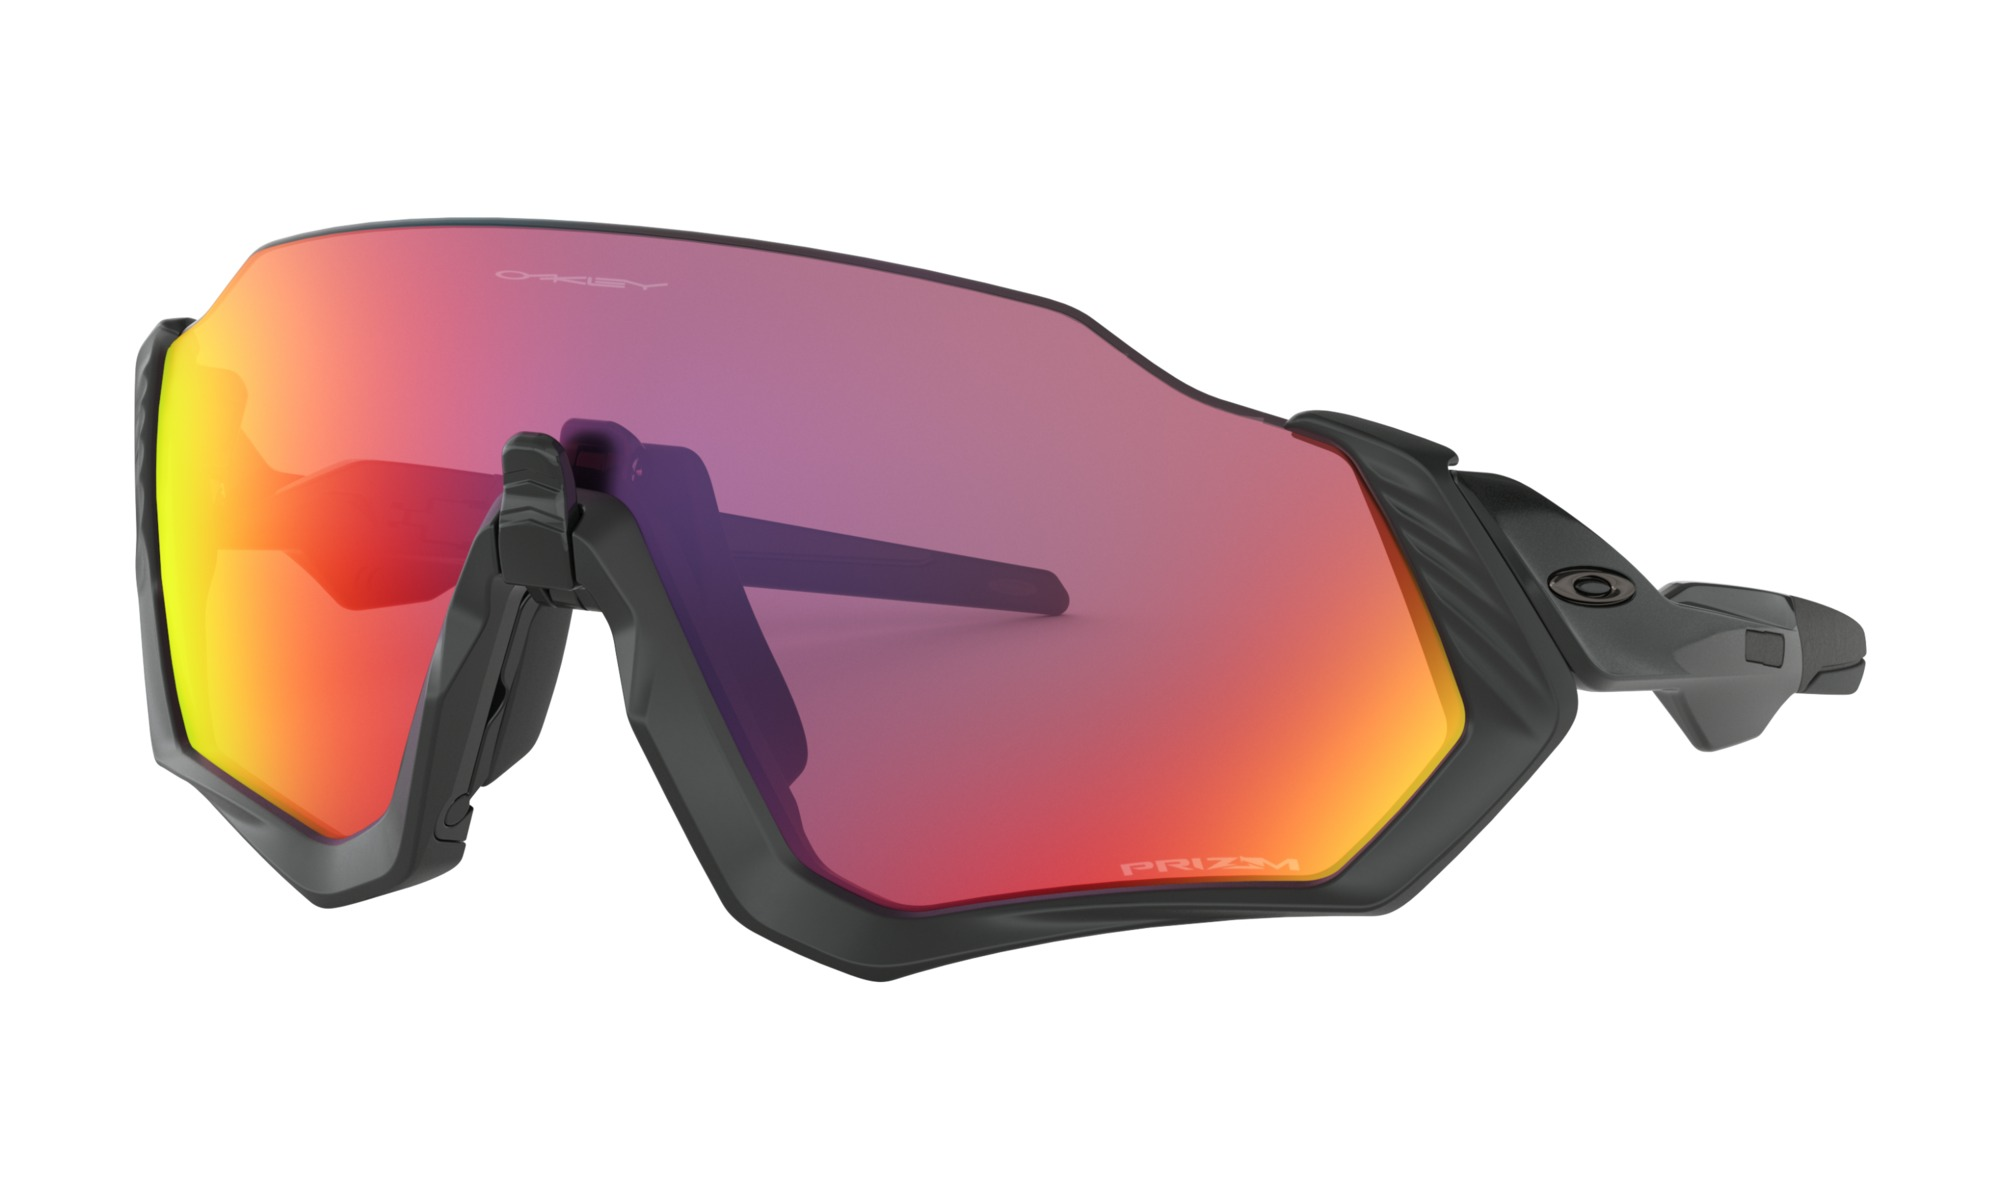 FLIGHT JACKET PRIZM ROAD - An open-edge brow maximizes the upper field of view, and our new Advancer nose bridge instantly opens airflow to combat fogging and overheating.